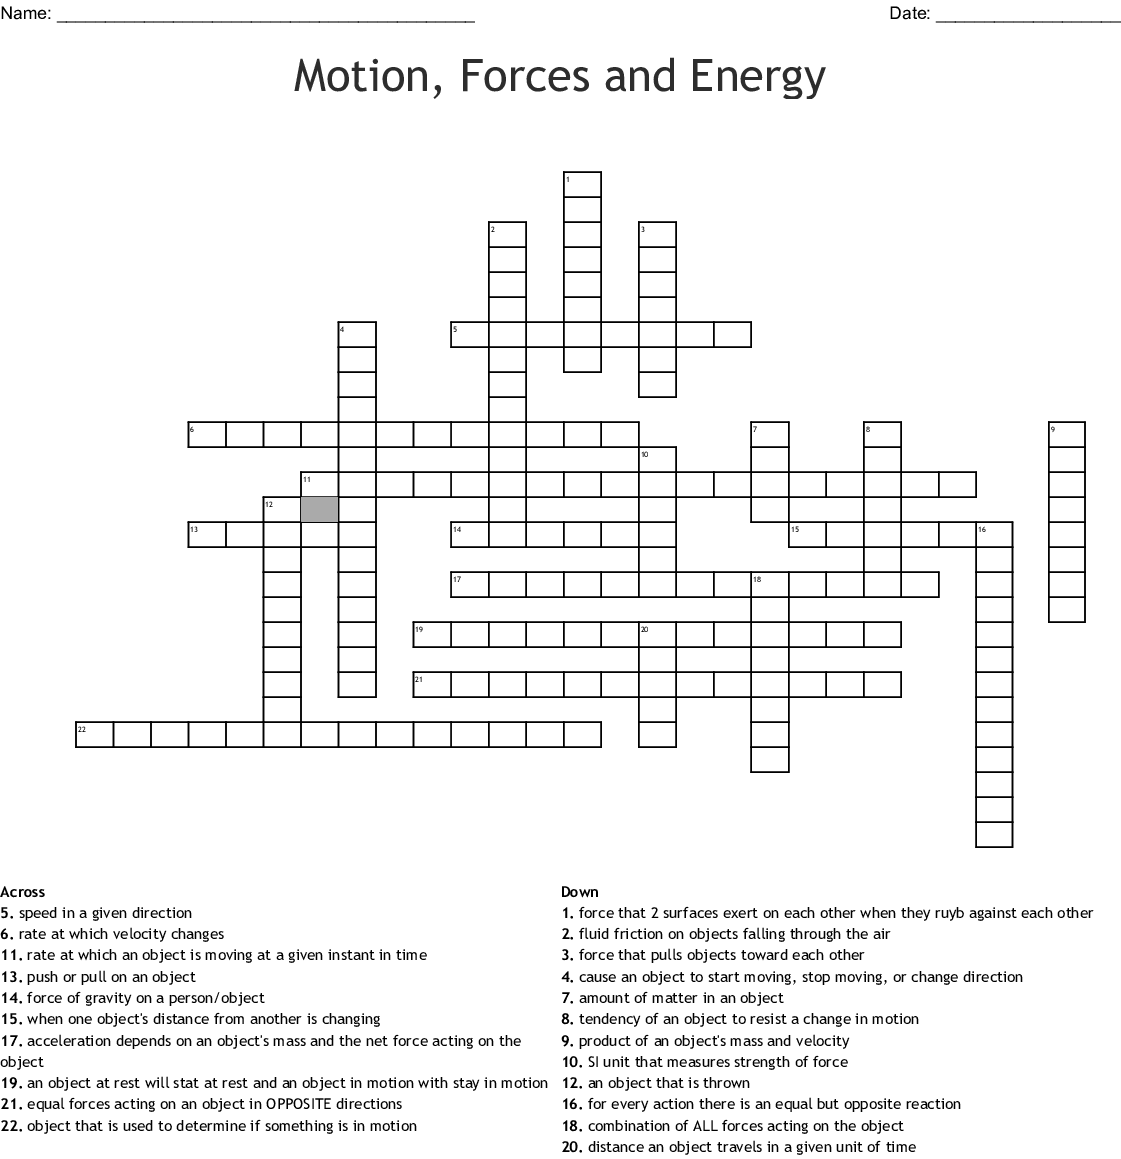 Motion Forces And Energy Crossword